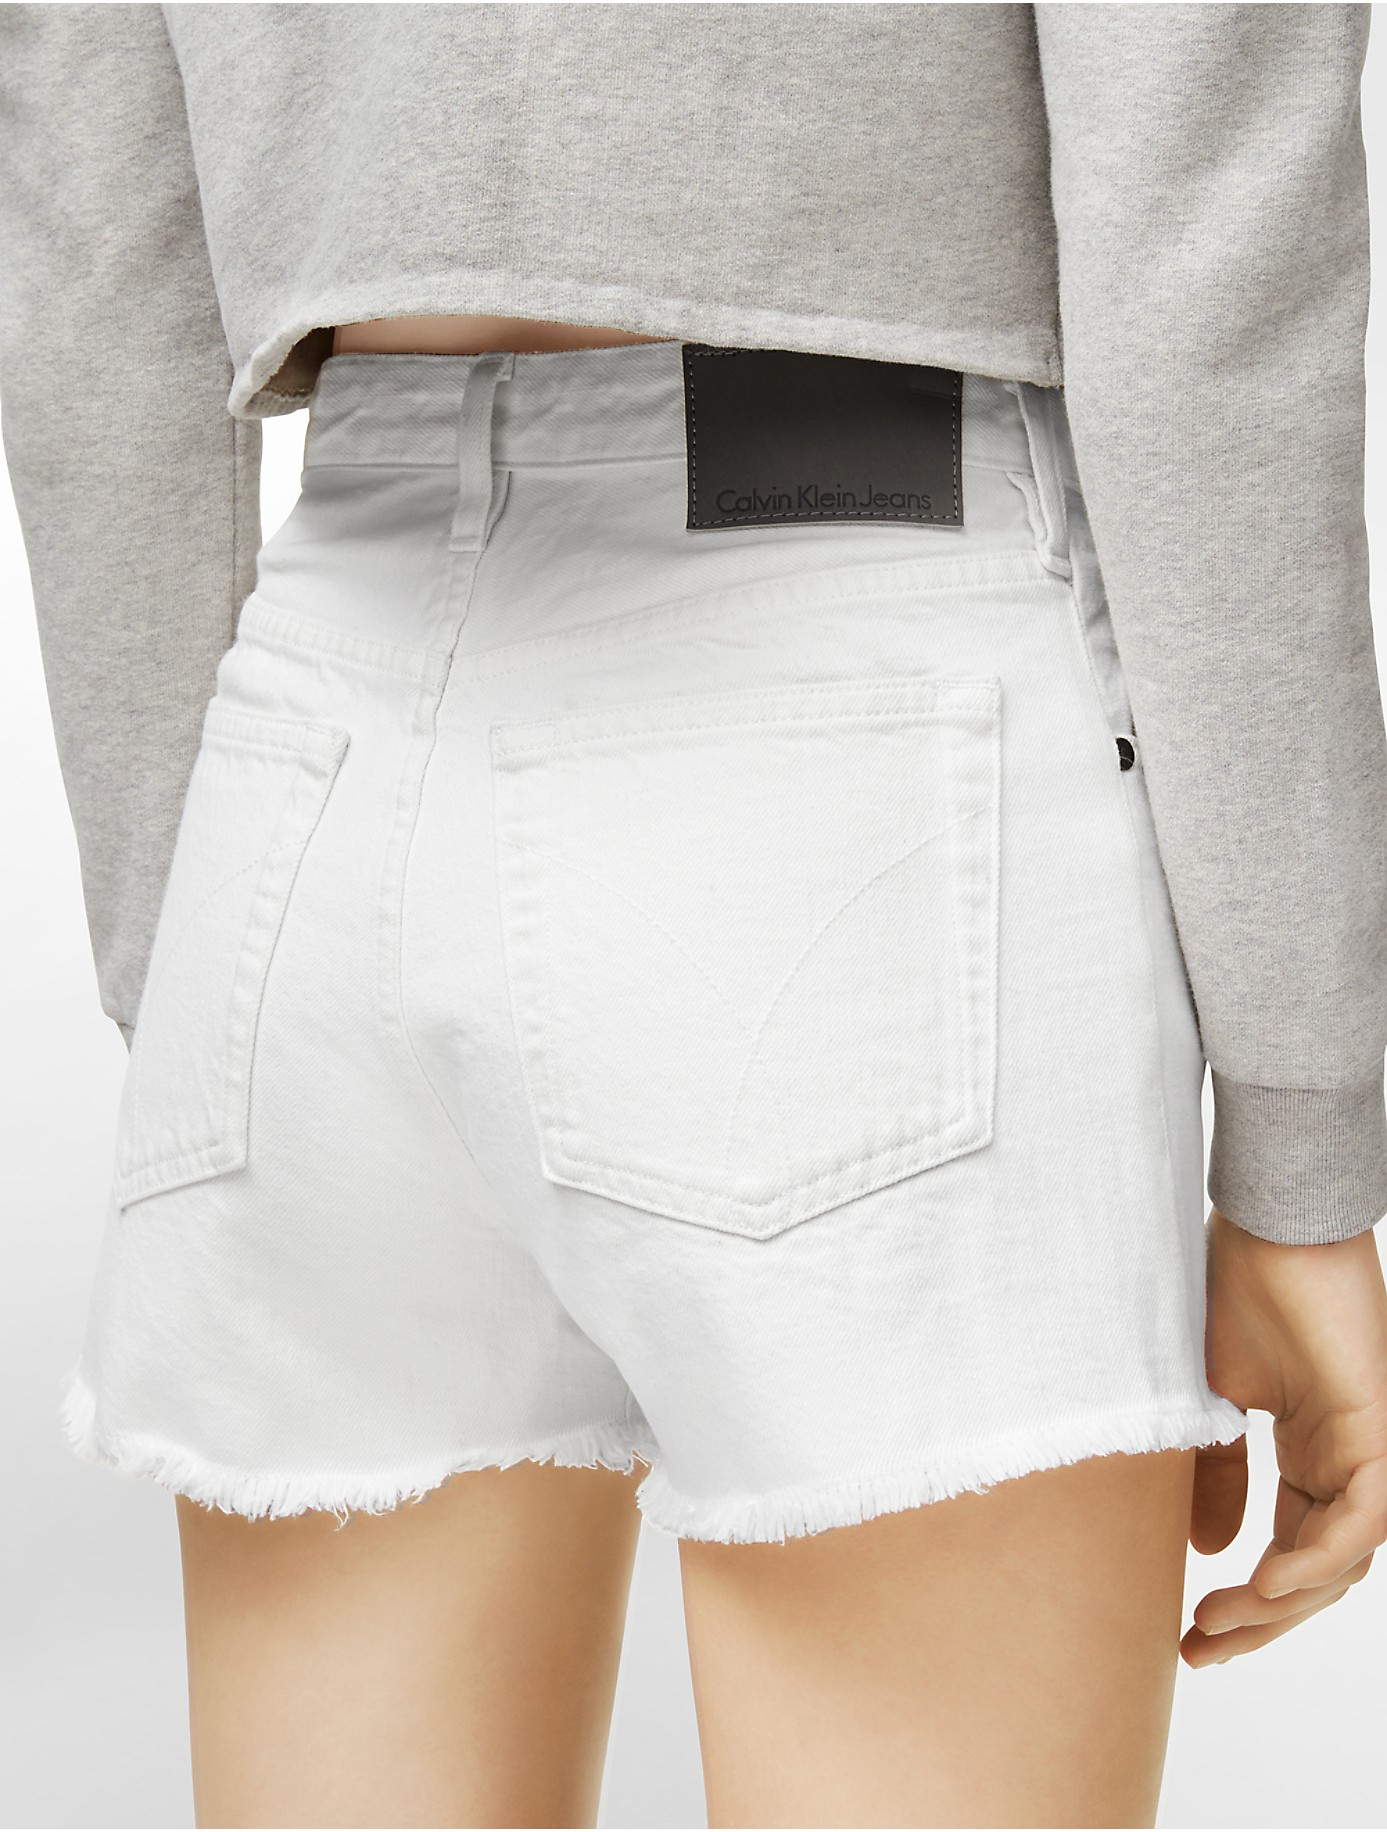 Calvin klein Jeans Sam High Rise Cutoff Denim Shorts in White | Lyst